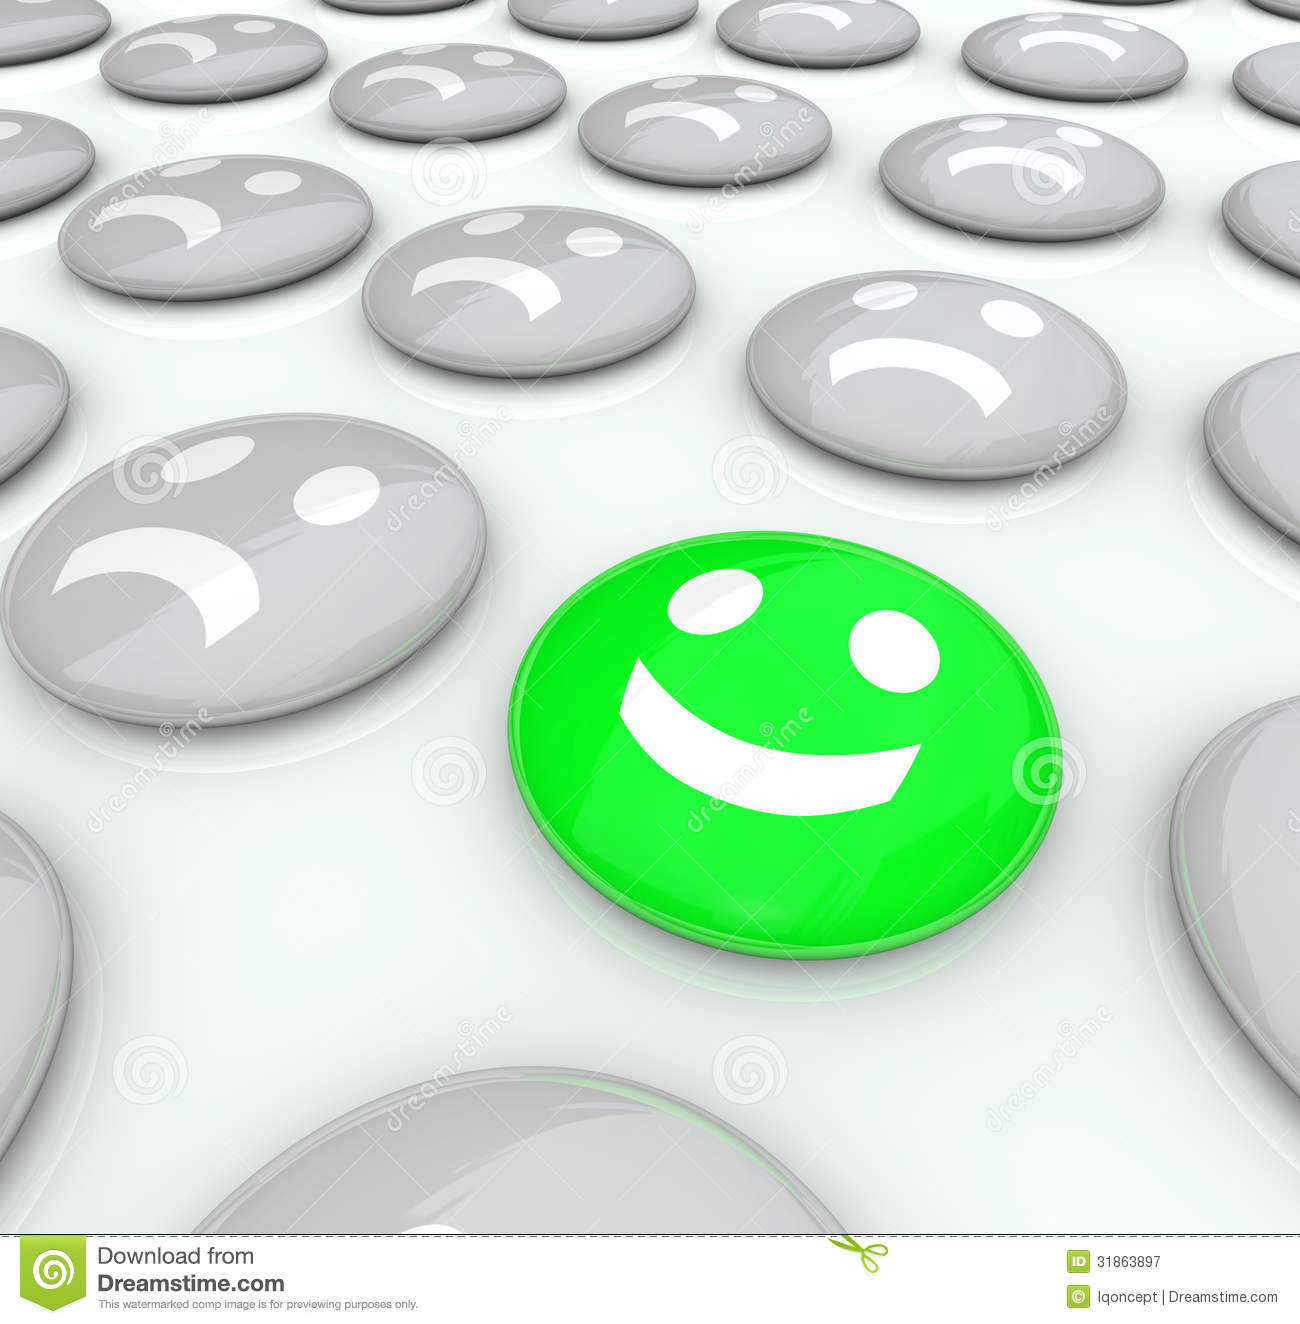 Attitude Face Clip Art One happy face among many